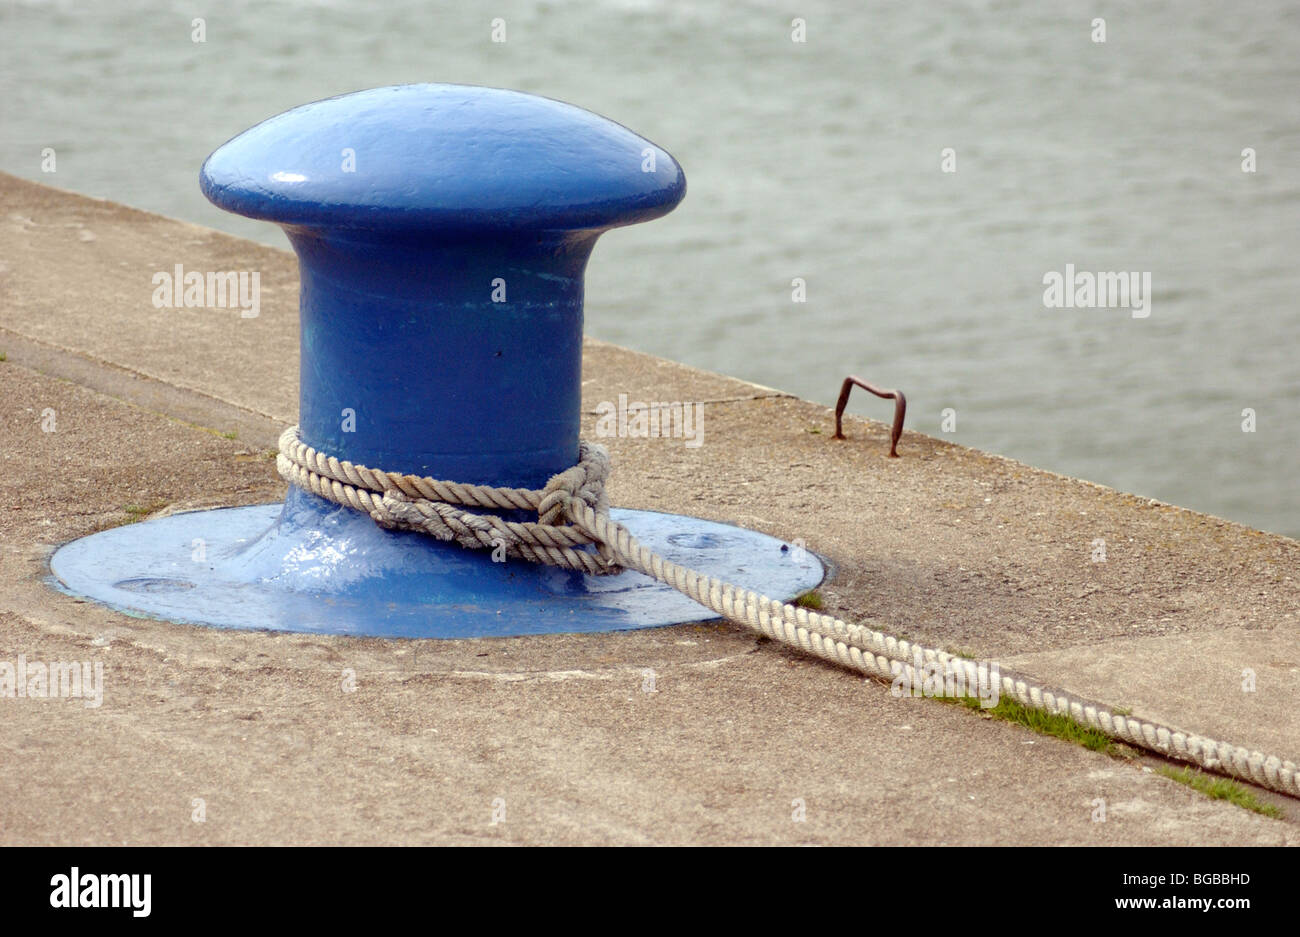 Royalty free photograph of  bollard with rope tied to it at a dock in UK - Stock Image